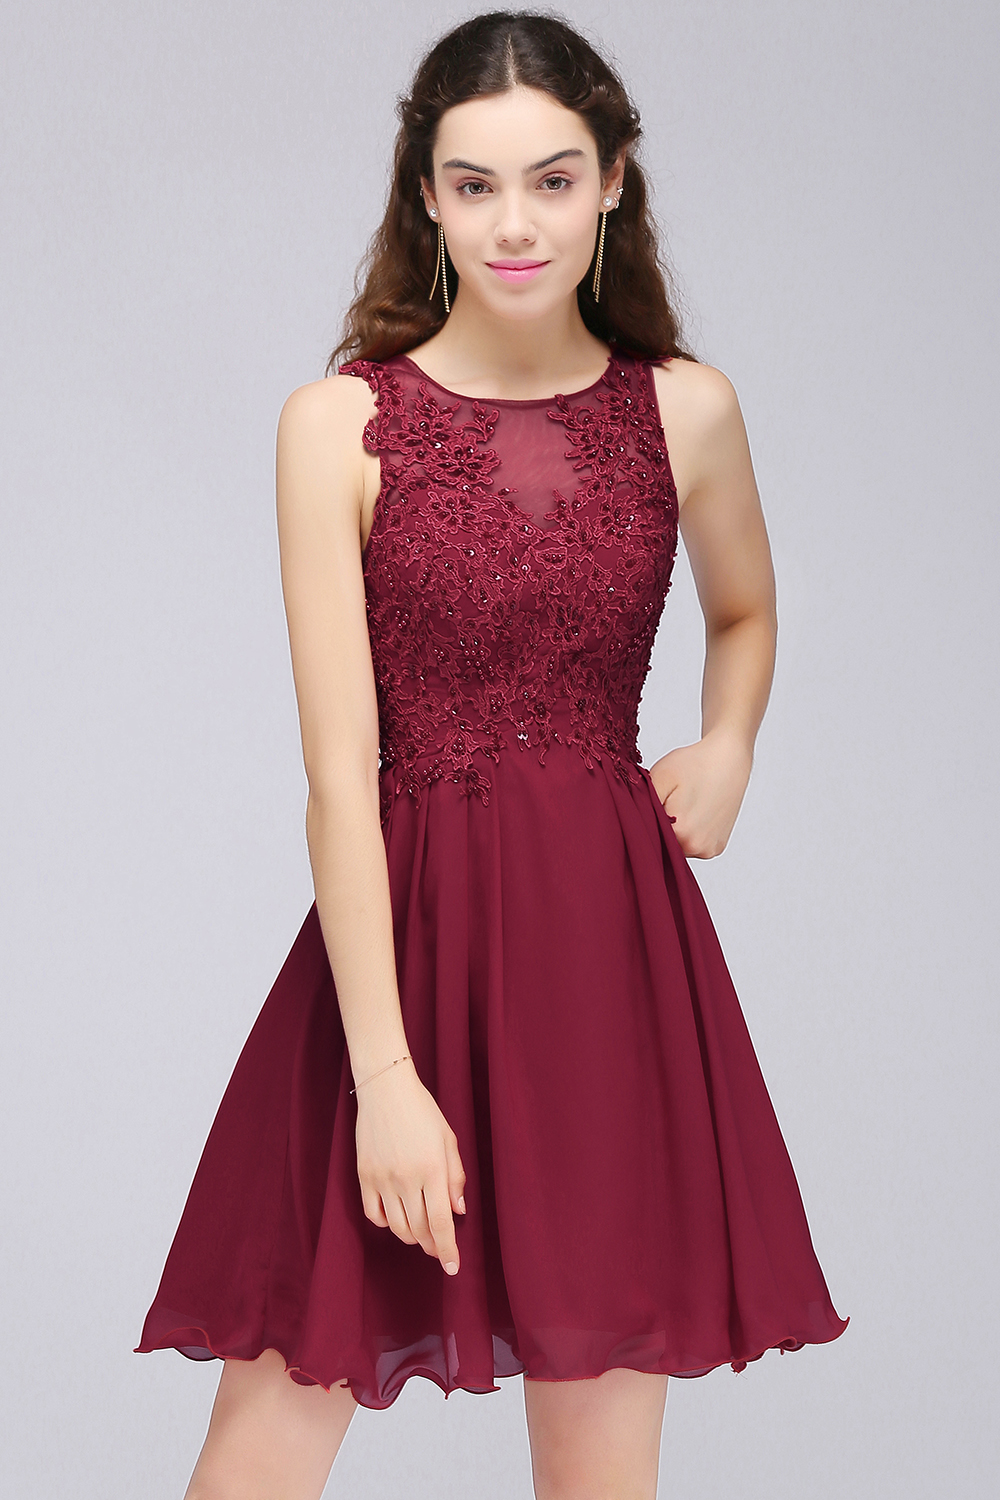 BMbridal Lovely Lace Short Burgundy Bridesmaid Dress with Appliques